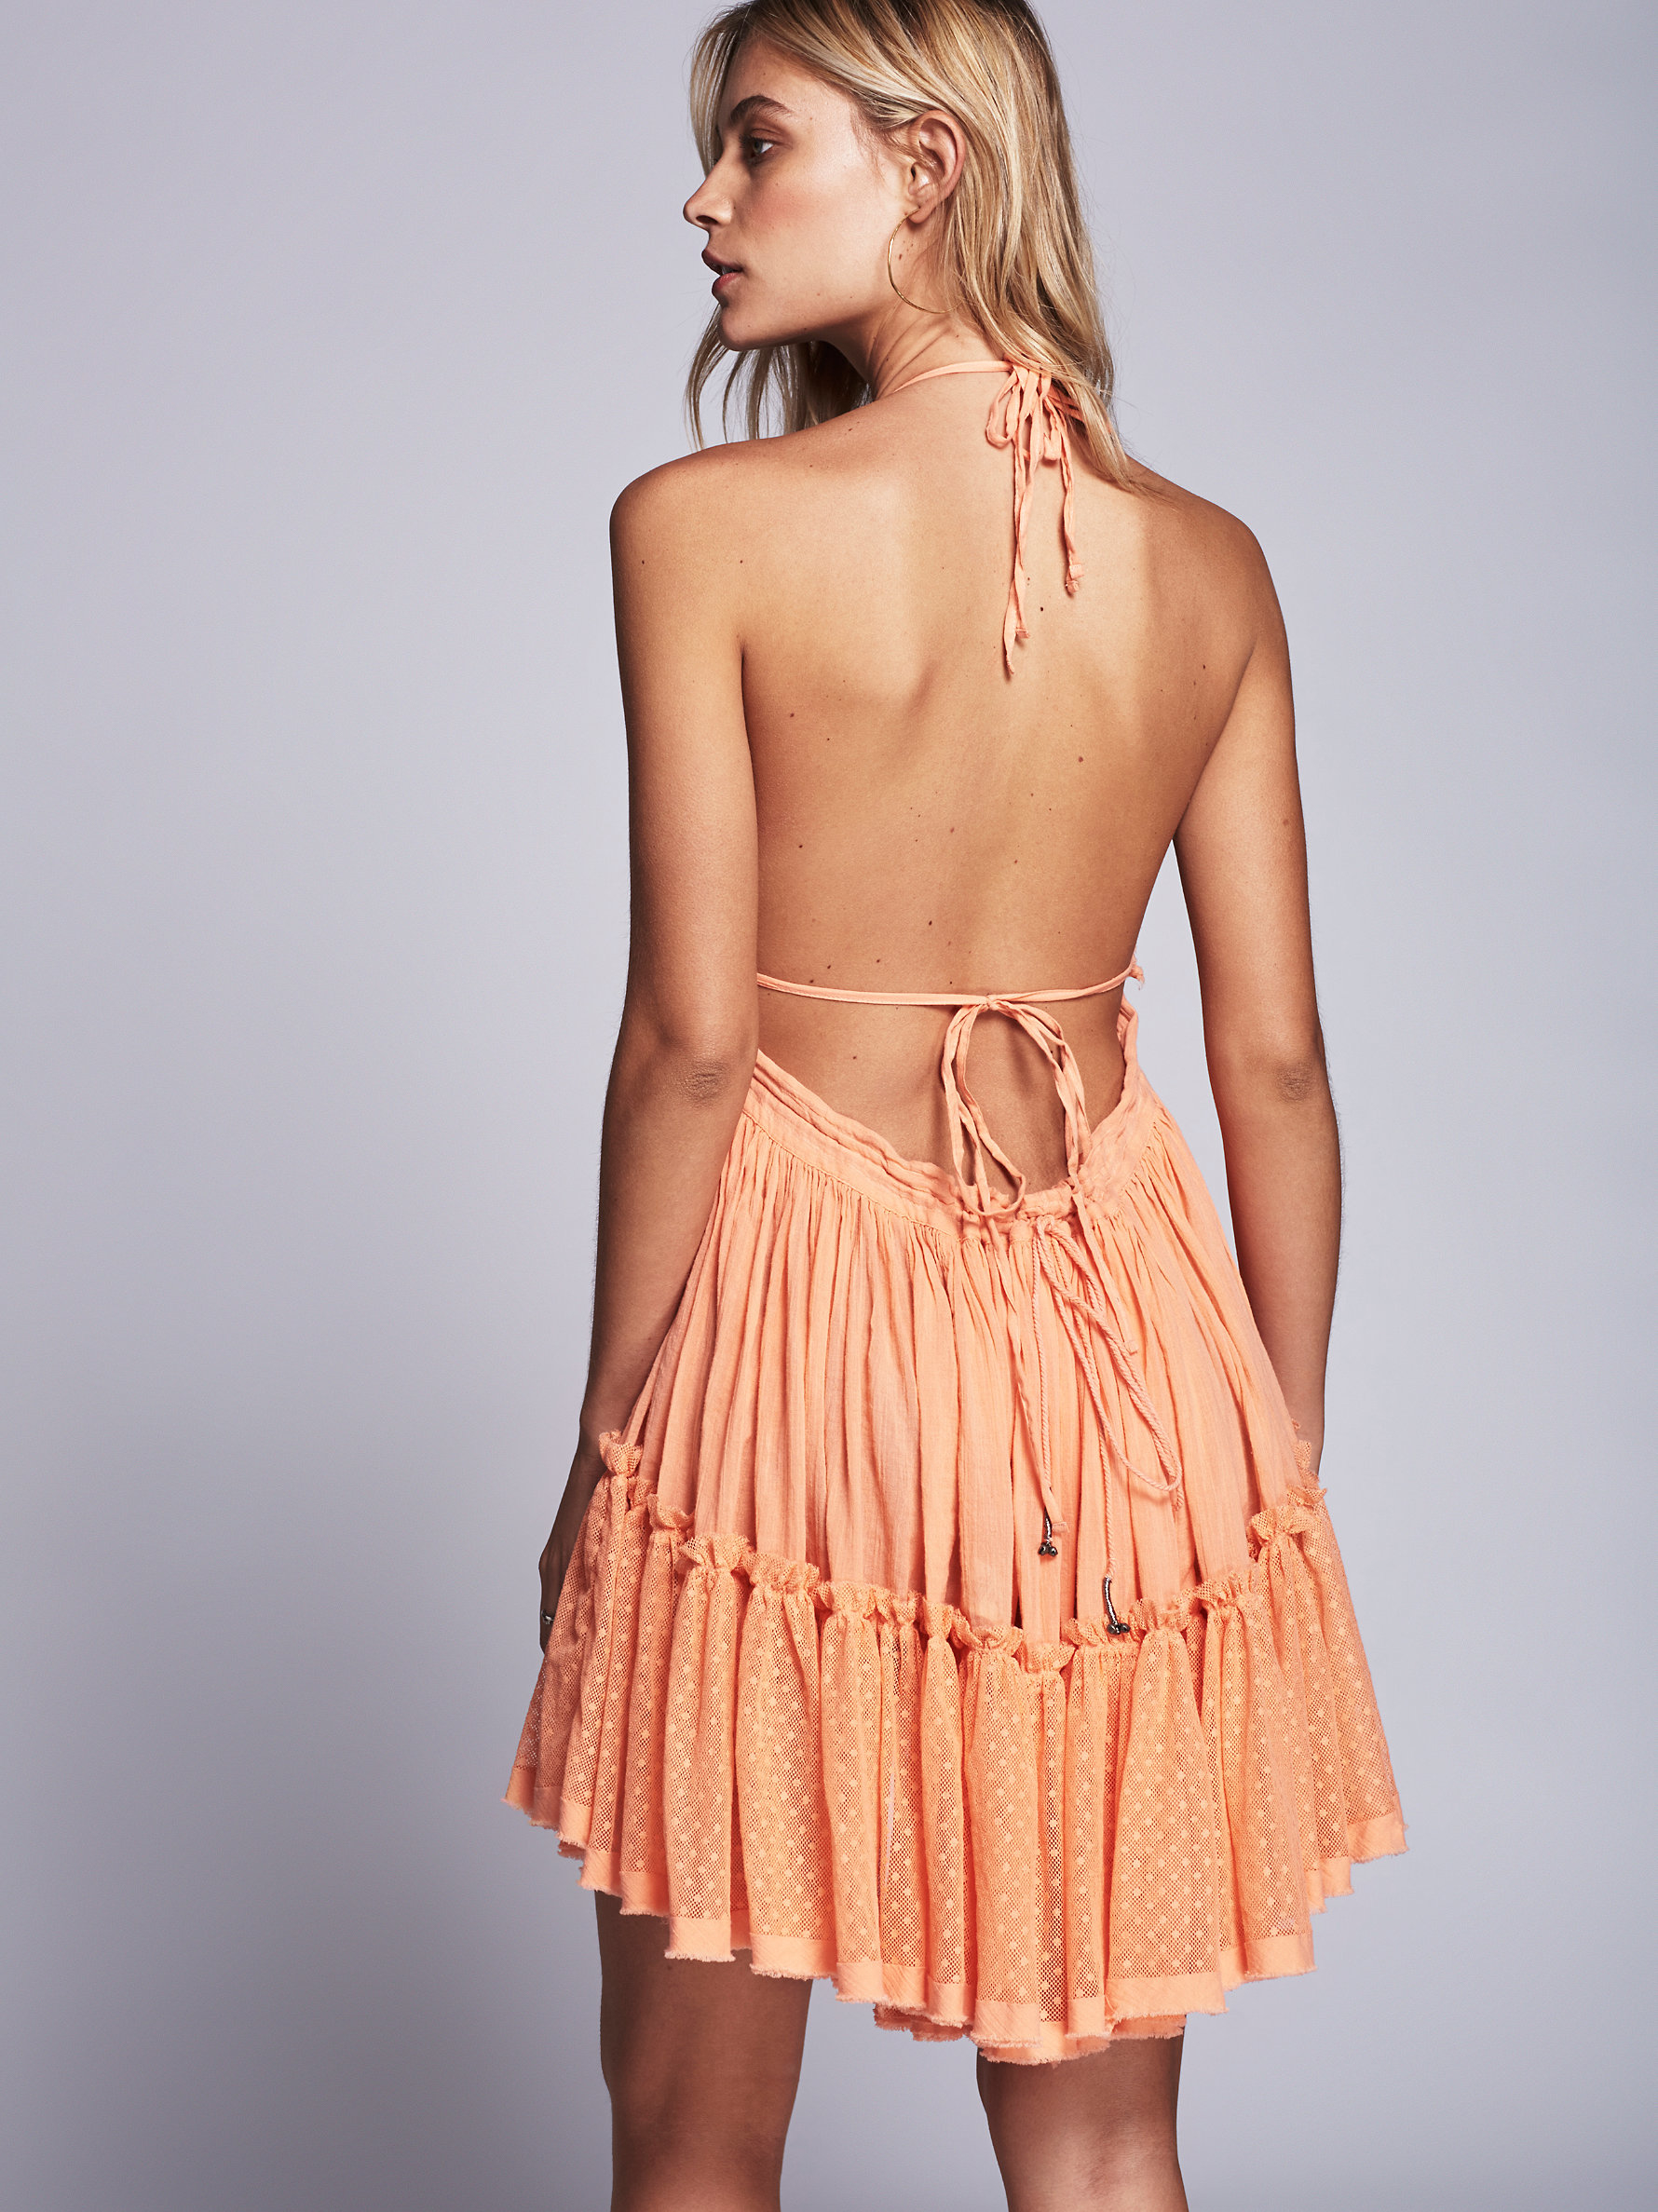 5541c01657 Free People 100 Degree Dress in Natural - Lyst